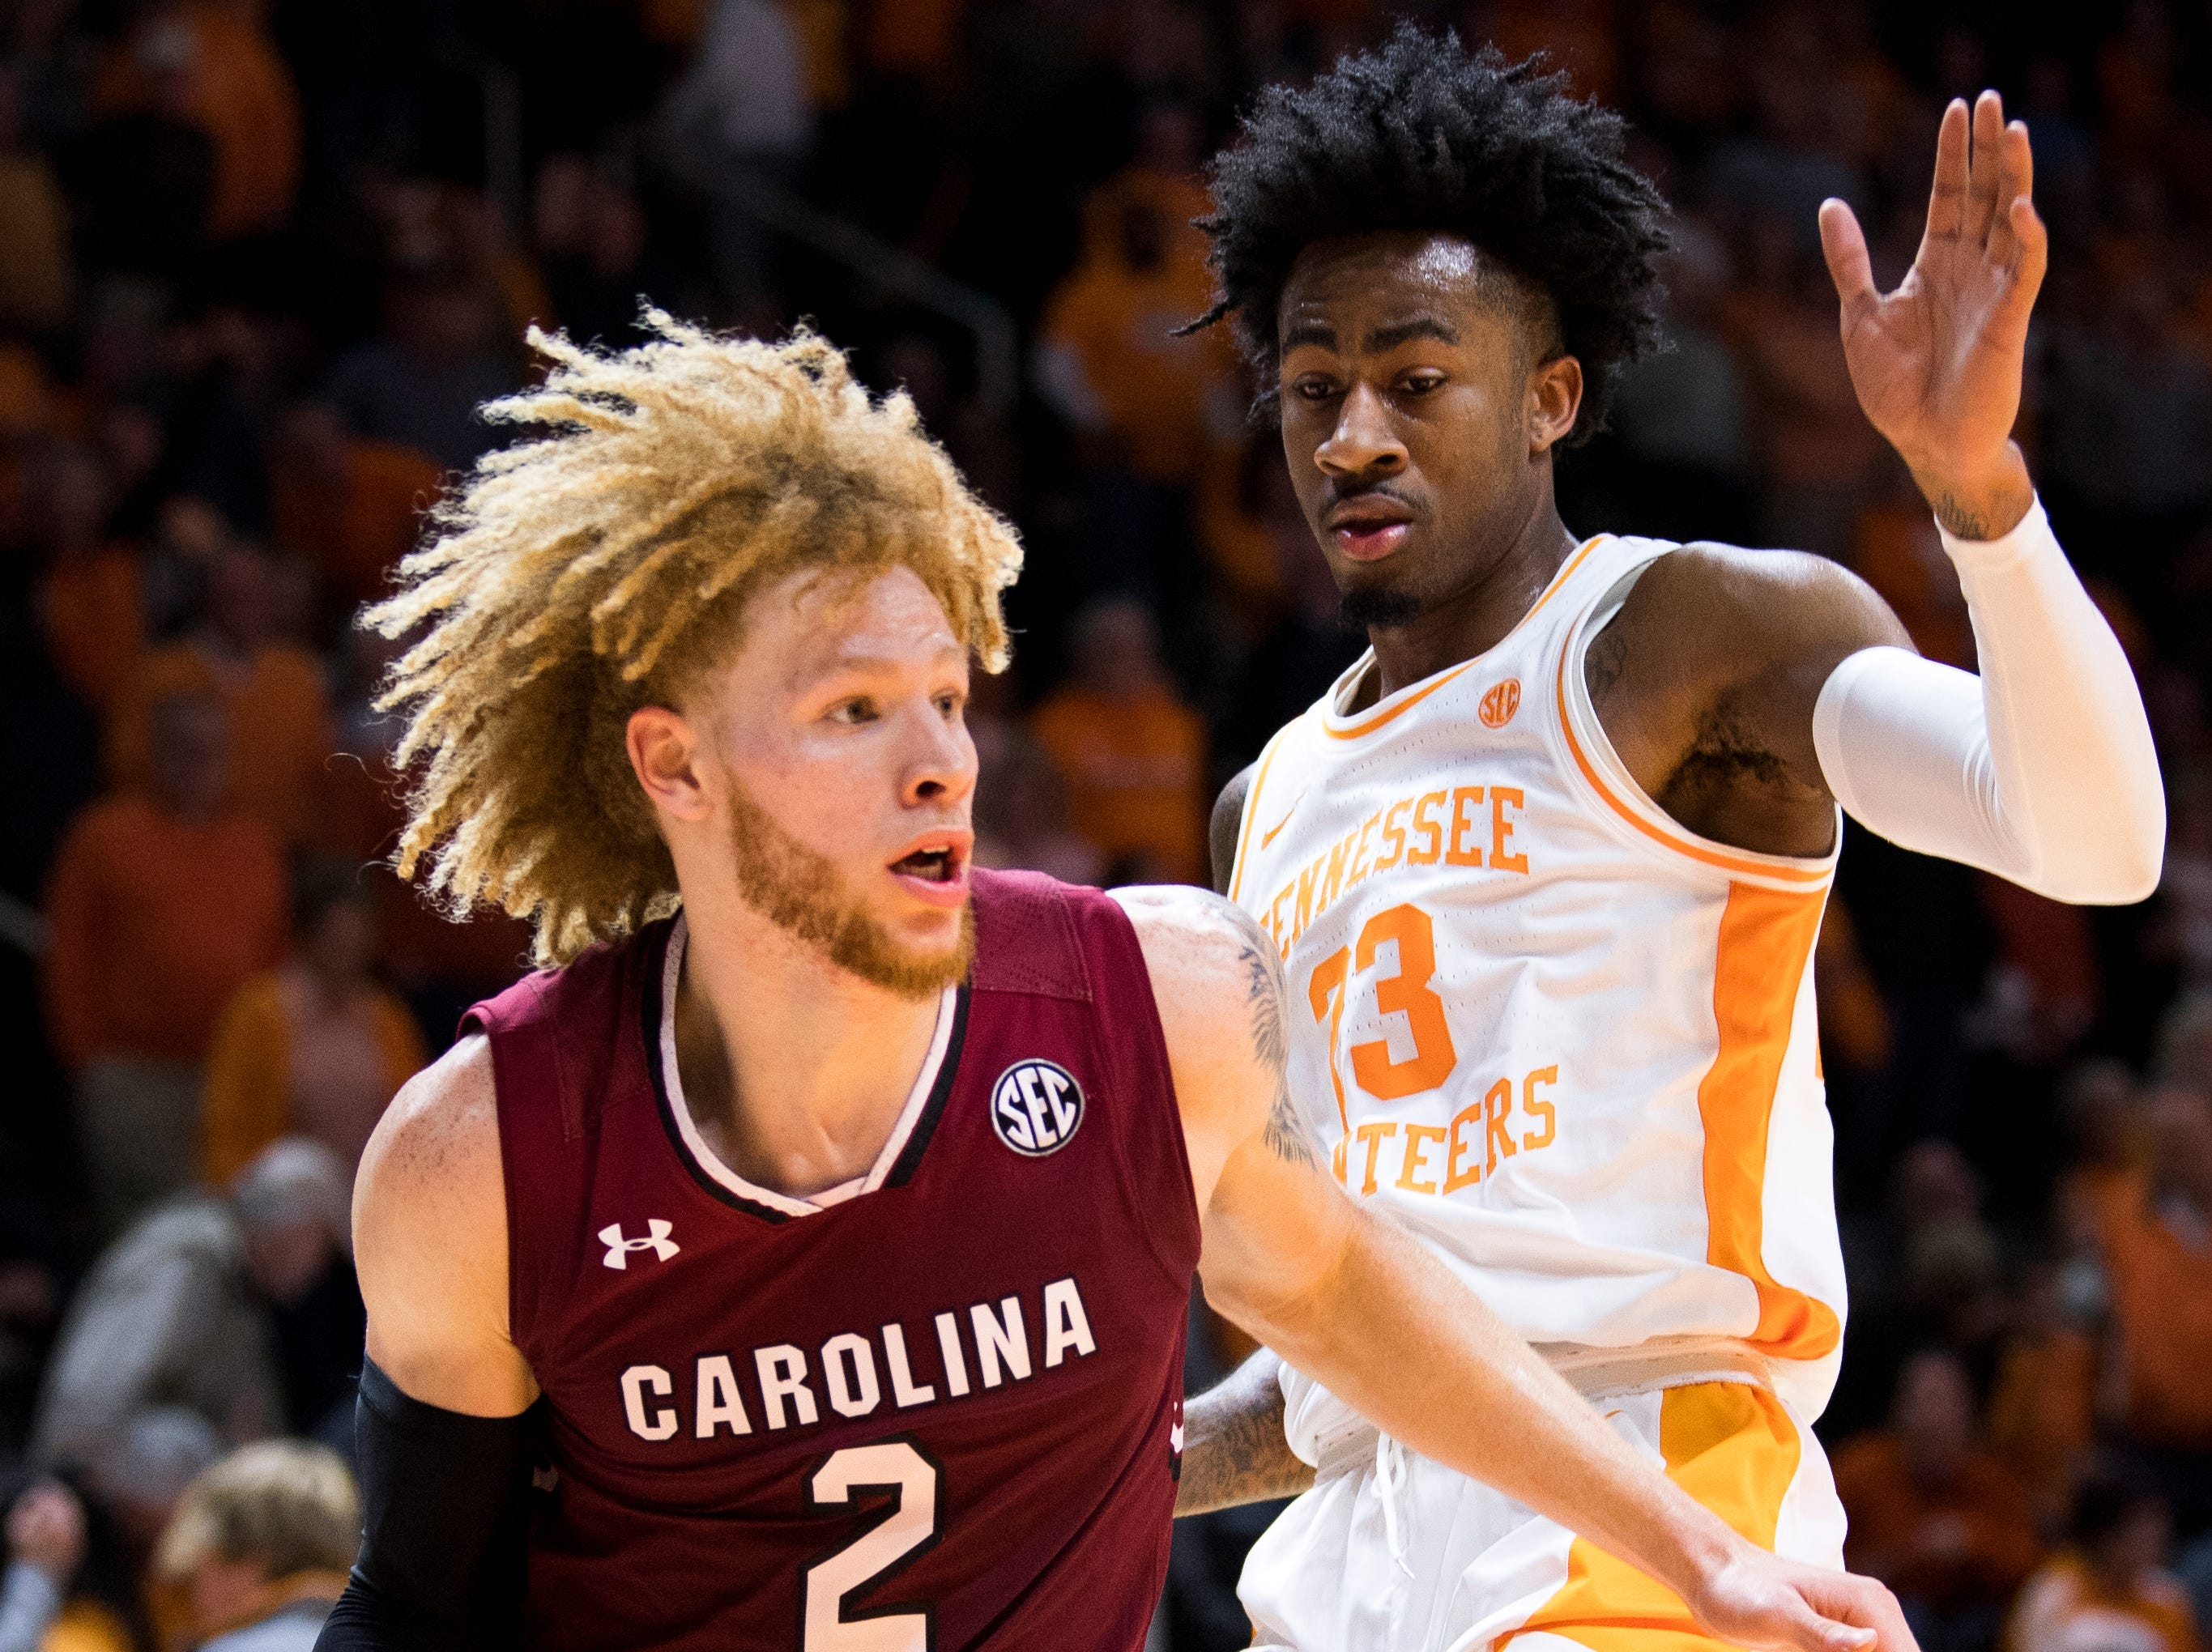 Tennessee guard Jordan Bowden (23) defends South Carolina guard Hassani Gravett (2) during Tennessee's home SEC game against South Carolina at Thompson-Boling Arena in Knoxville on Wednesday, February 13, 2019.